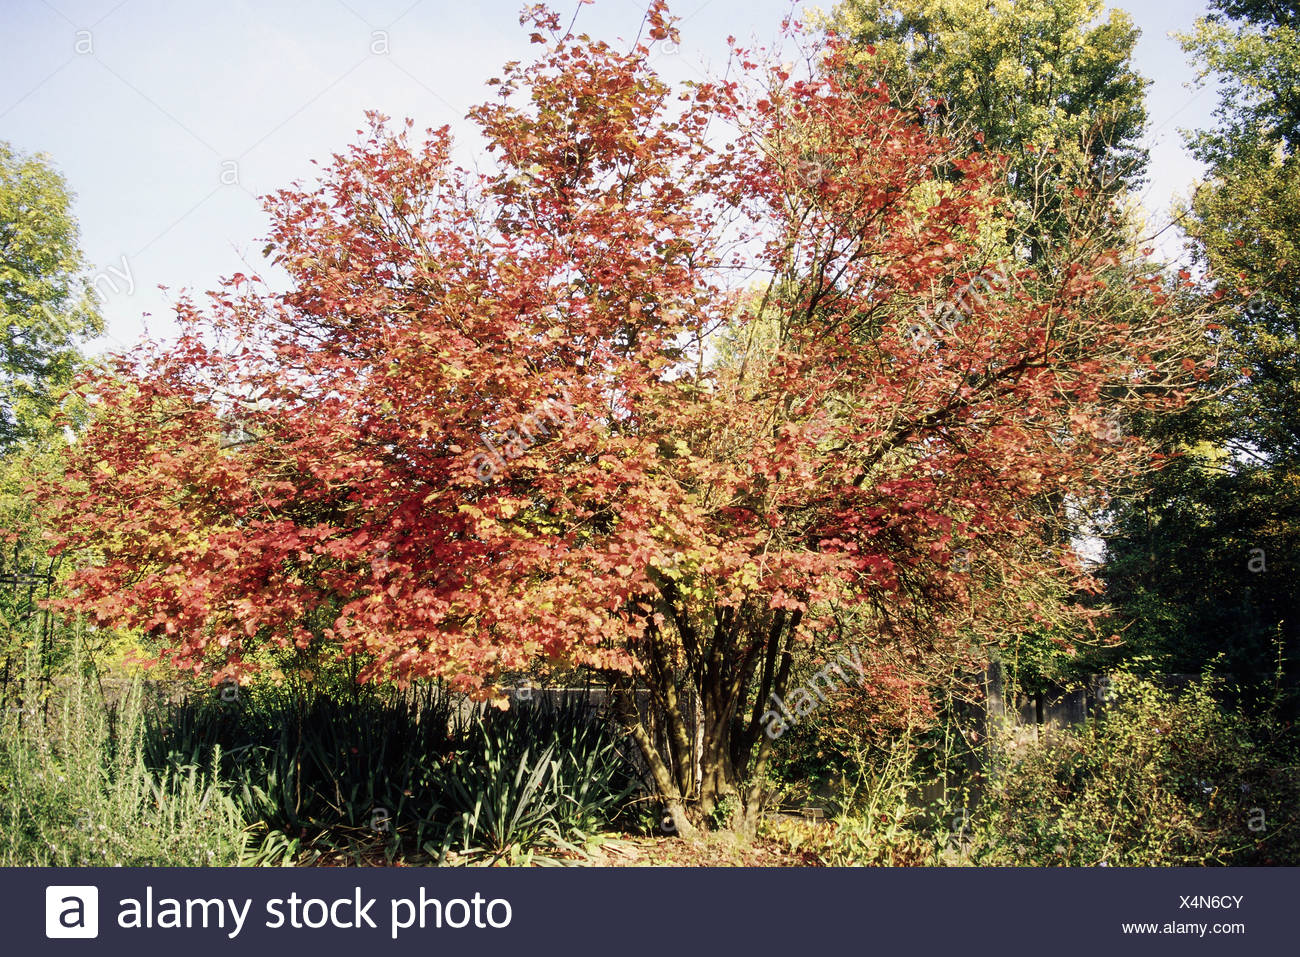 botany, Viburnum, Wayfaring Tree, (Viburnum lantana),  Asteridae, Dipsacales, Adoxaceae, caprifoliaceae, Additional-Rights-Clearance-Info-Not-Available Stock Photo